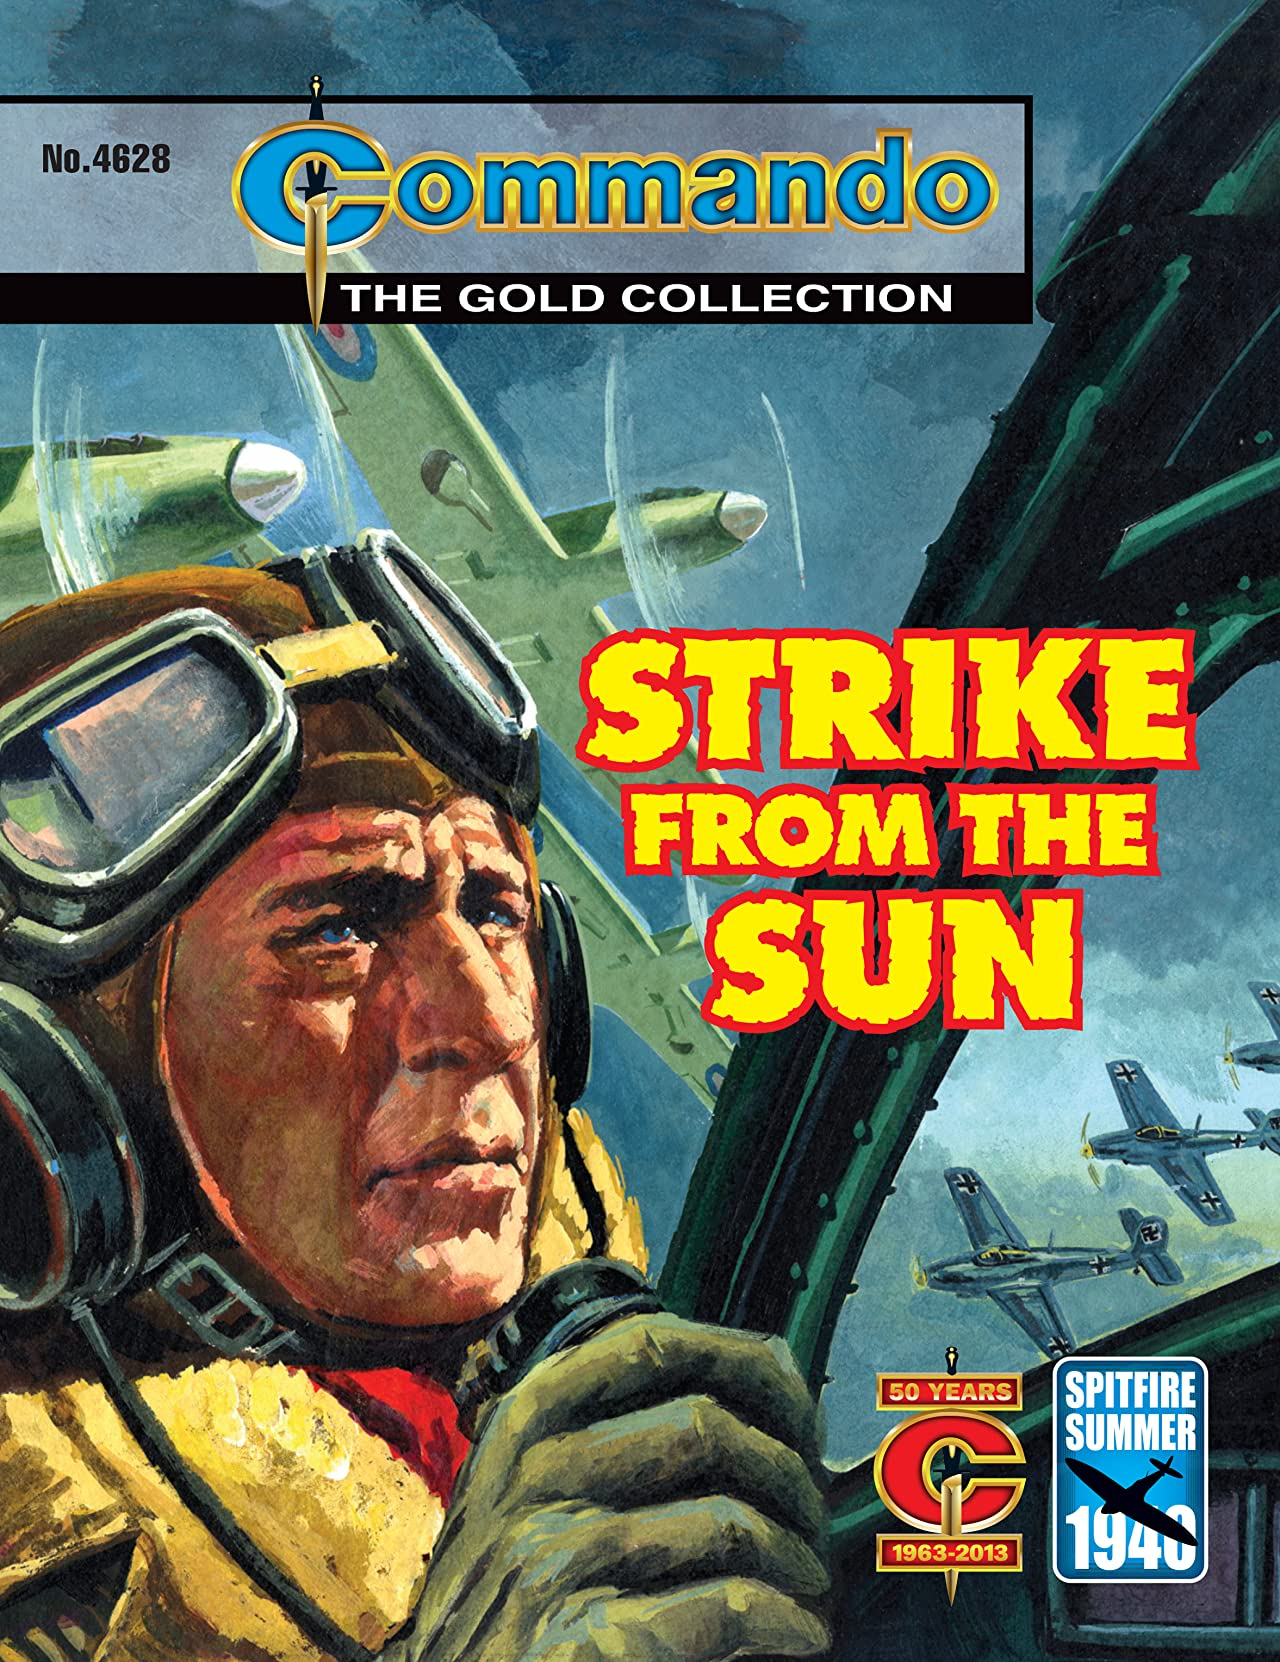 Commando #4628: Strike From The Sun